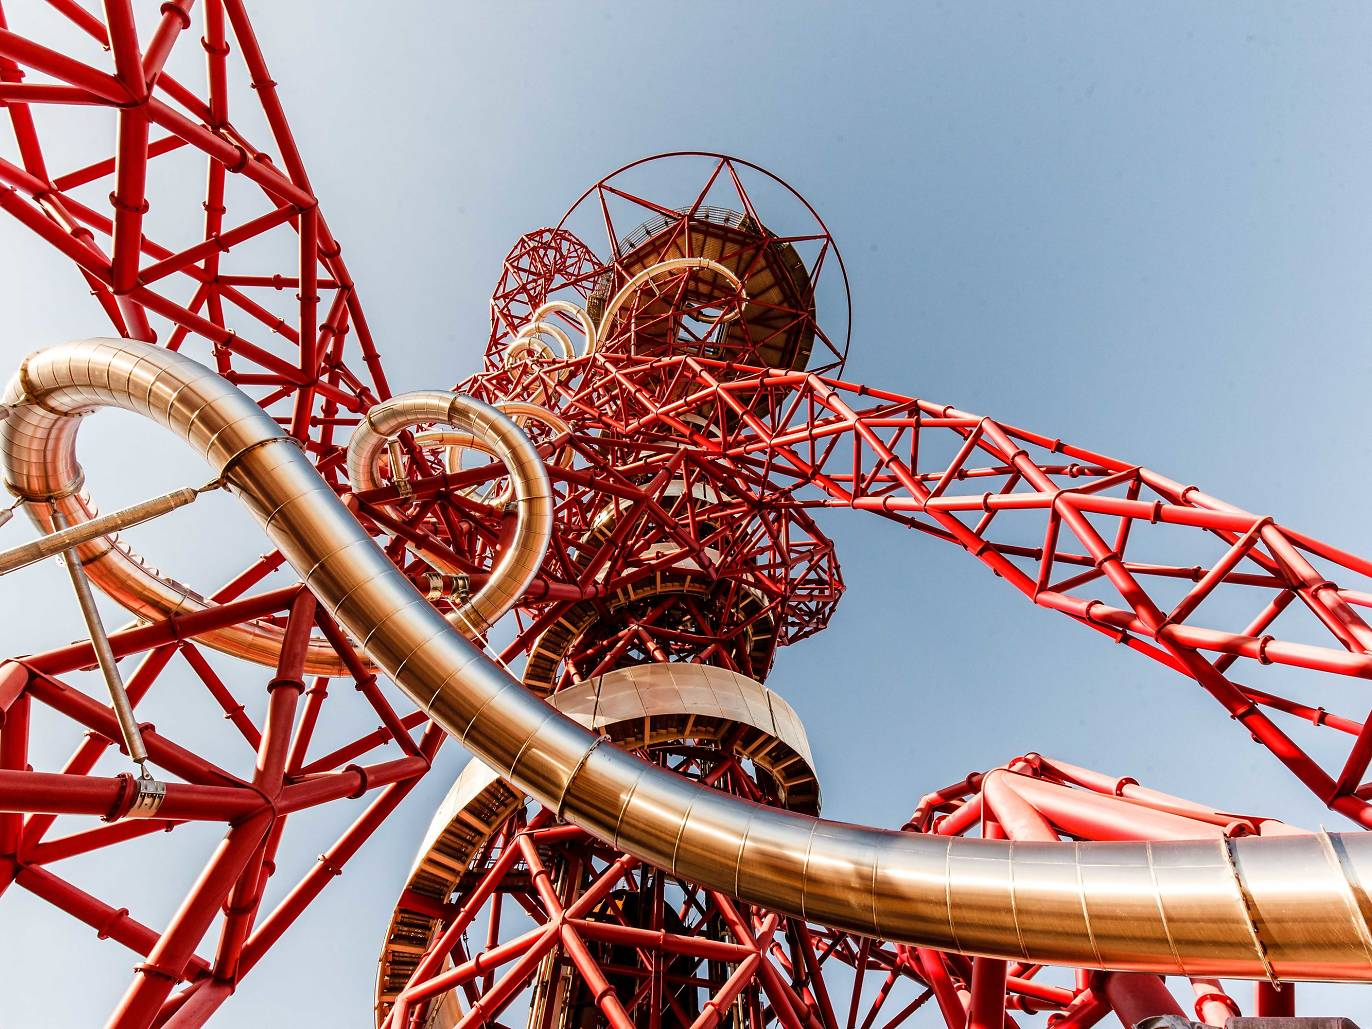 Easter at the ArcelorMittal Orbit